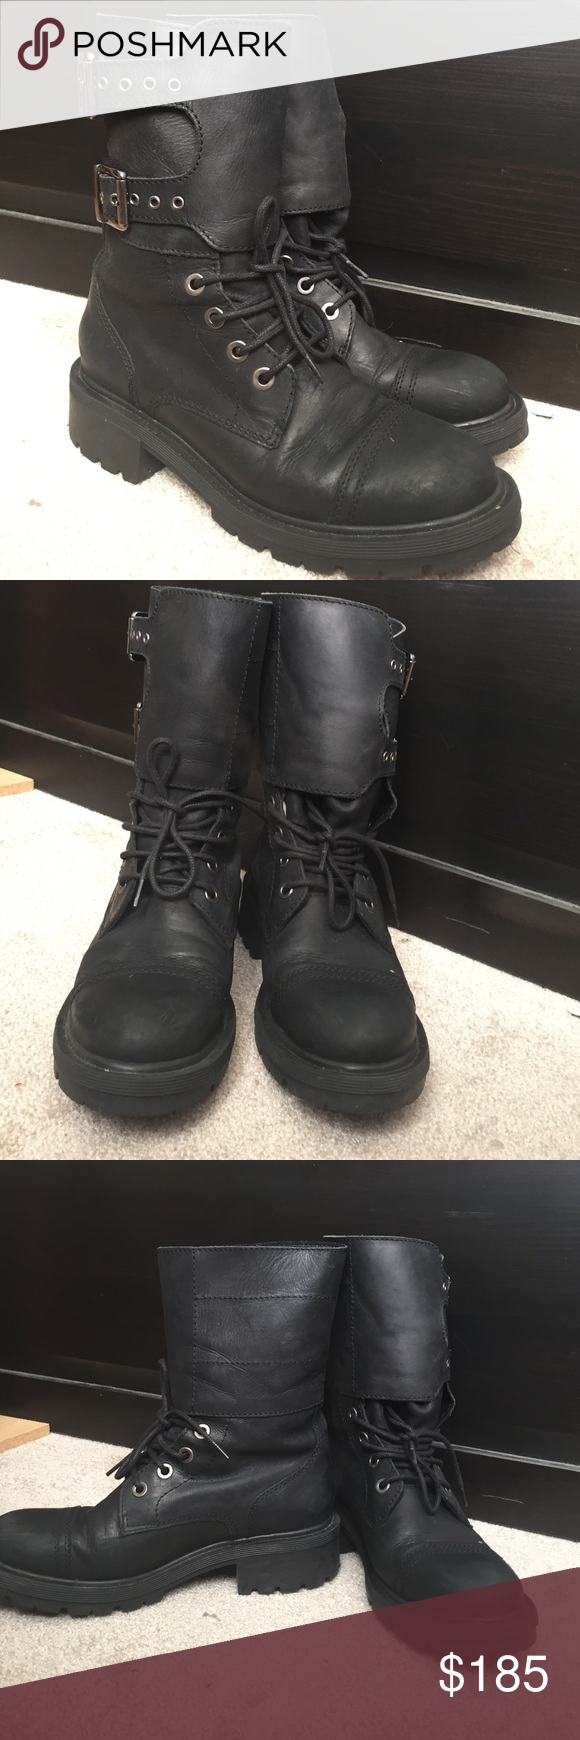 All saints black delphie boots Black leather all saints delphie boots. Industrial type bottom. EU size 38, US size 7.5, UK size 5. The reason the dispatch says Evelyn is because the shipping can go through Amazon if you want so I did it on my mothers Amazon acct which has free two days shipping (because prime) All Saints Shoes Combat & Moto Boots